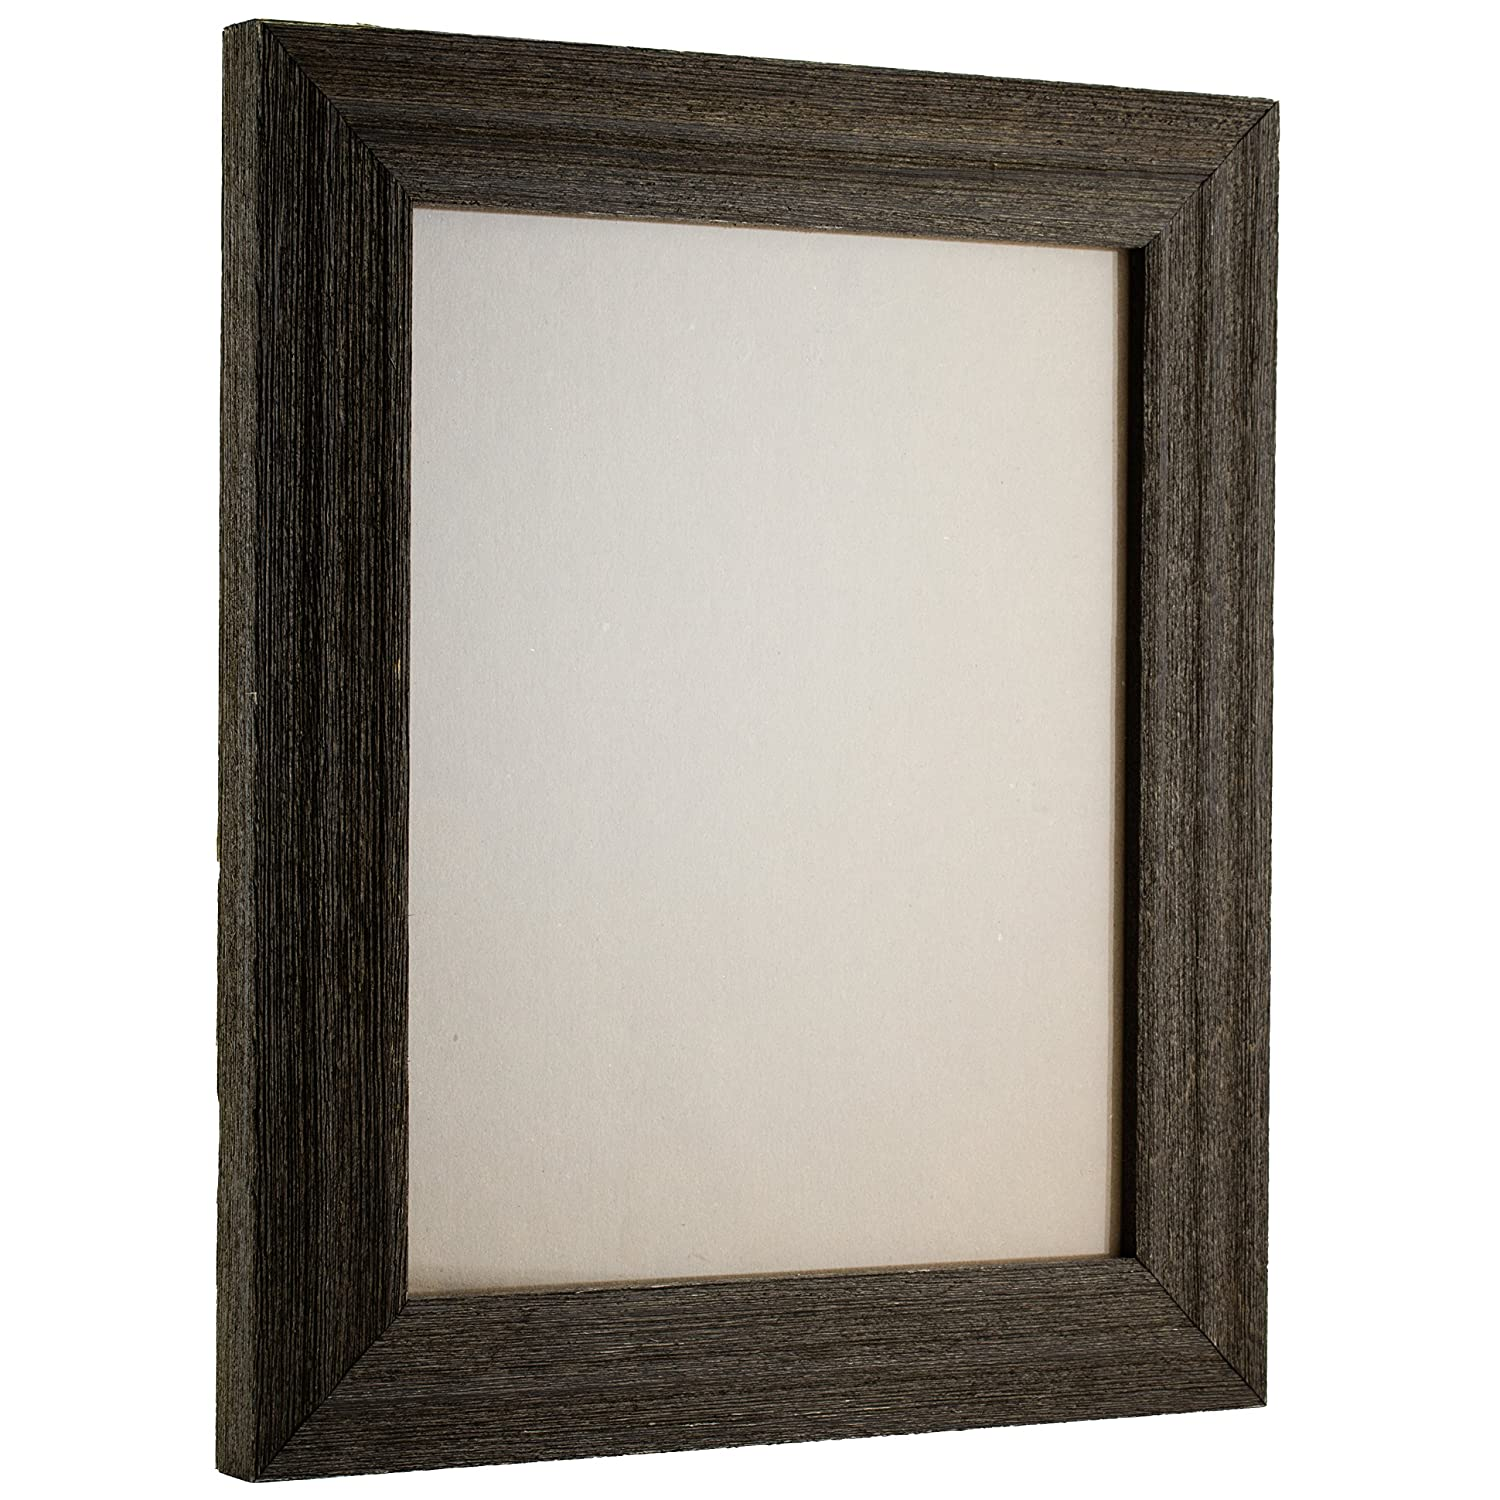 Picture Frames Aaron Brothers Choice Image Craft Decoration Ideas